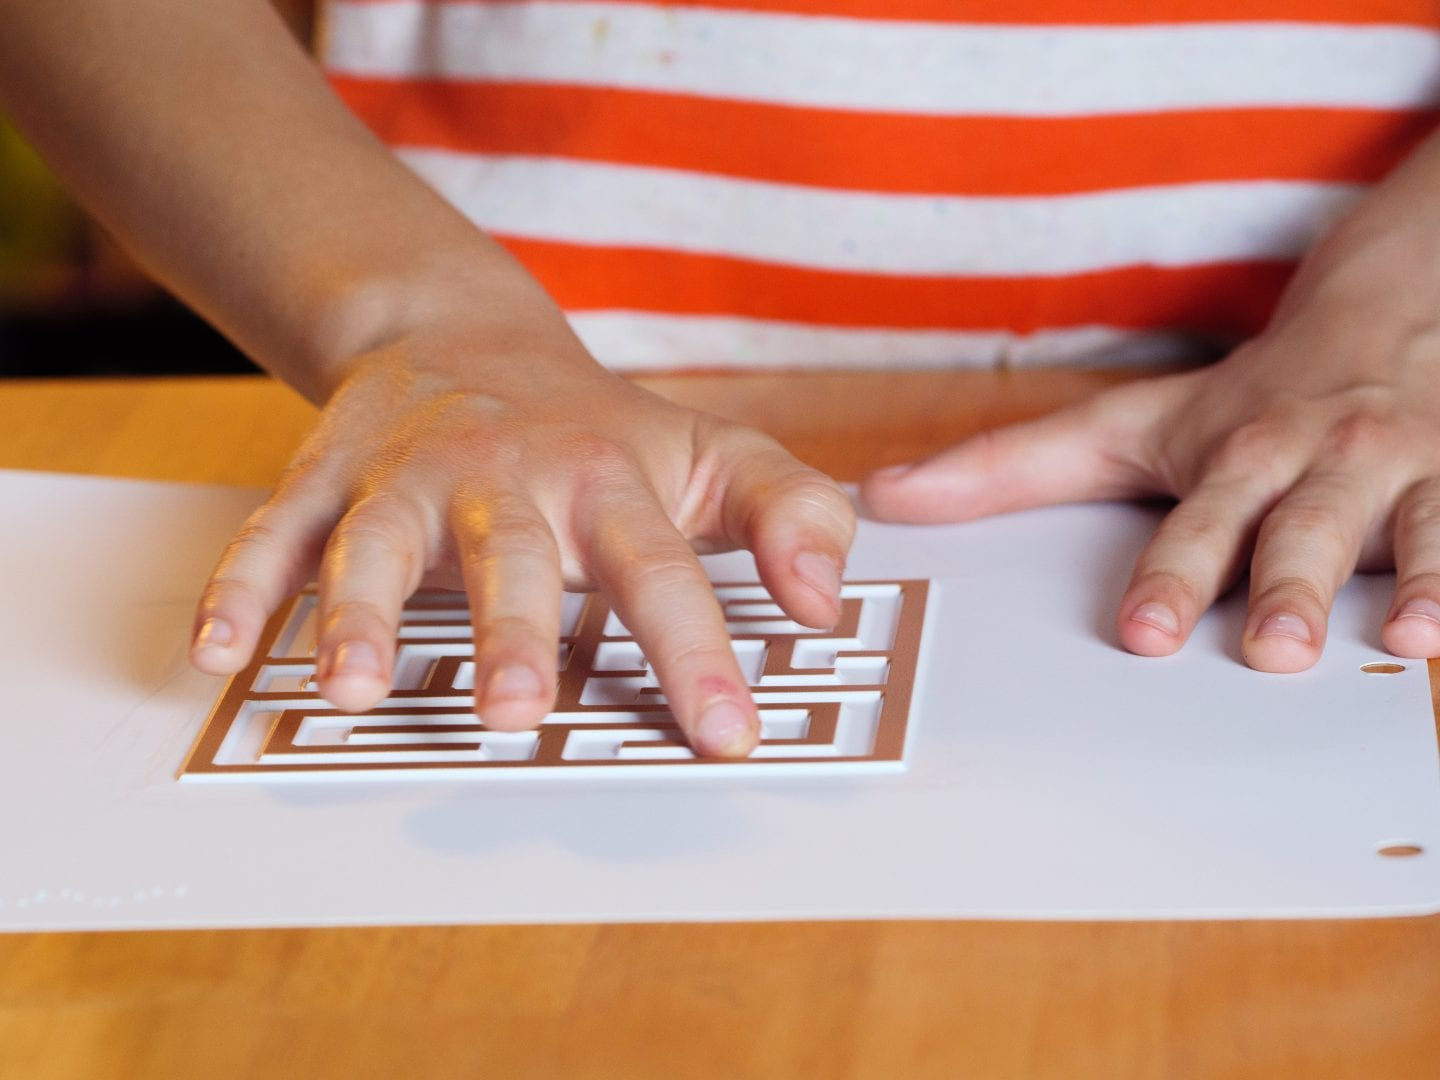 a child standing at a table with their one of their hands exploring a Finger Walks tactile labyrinth